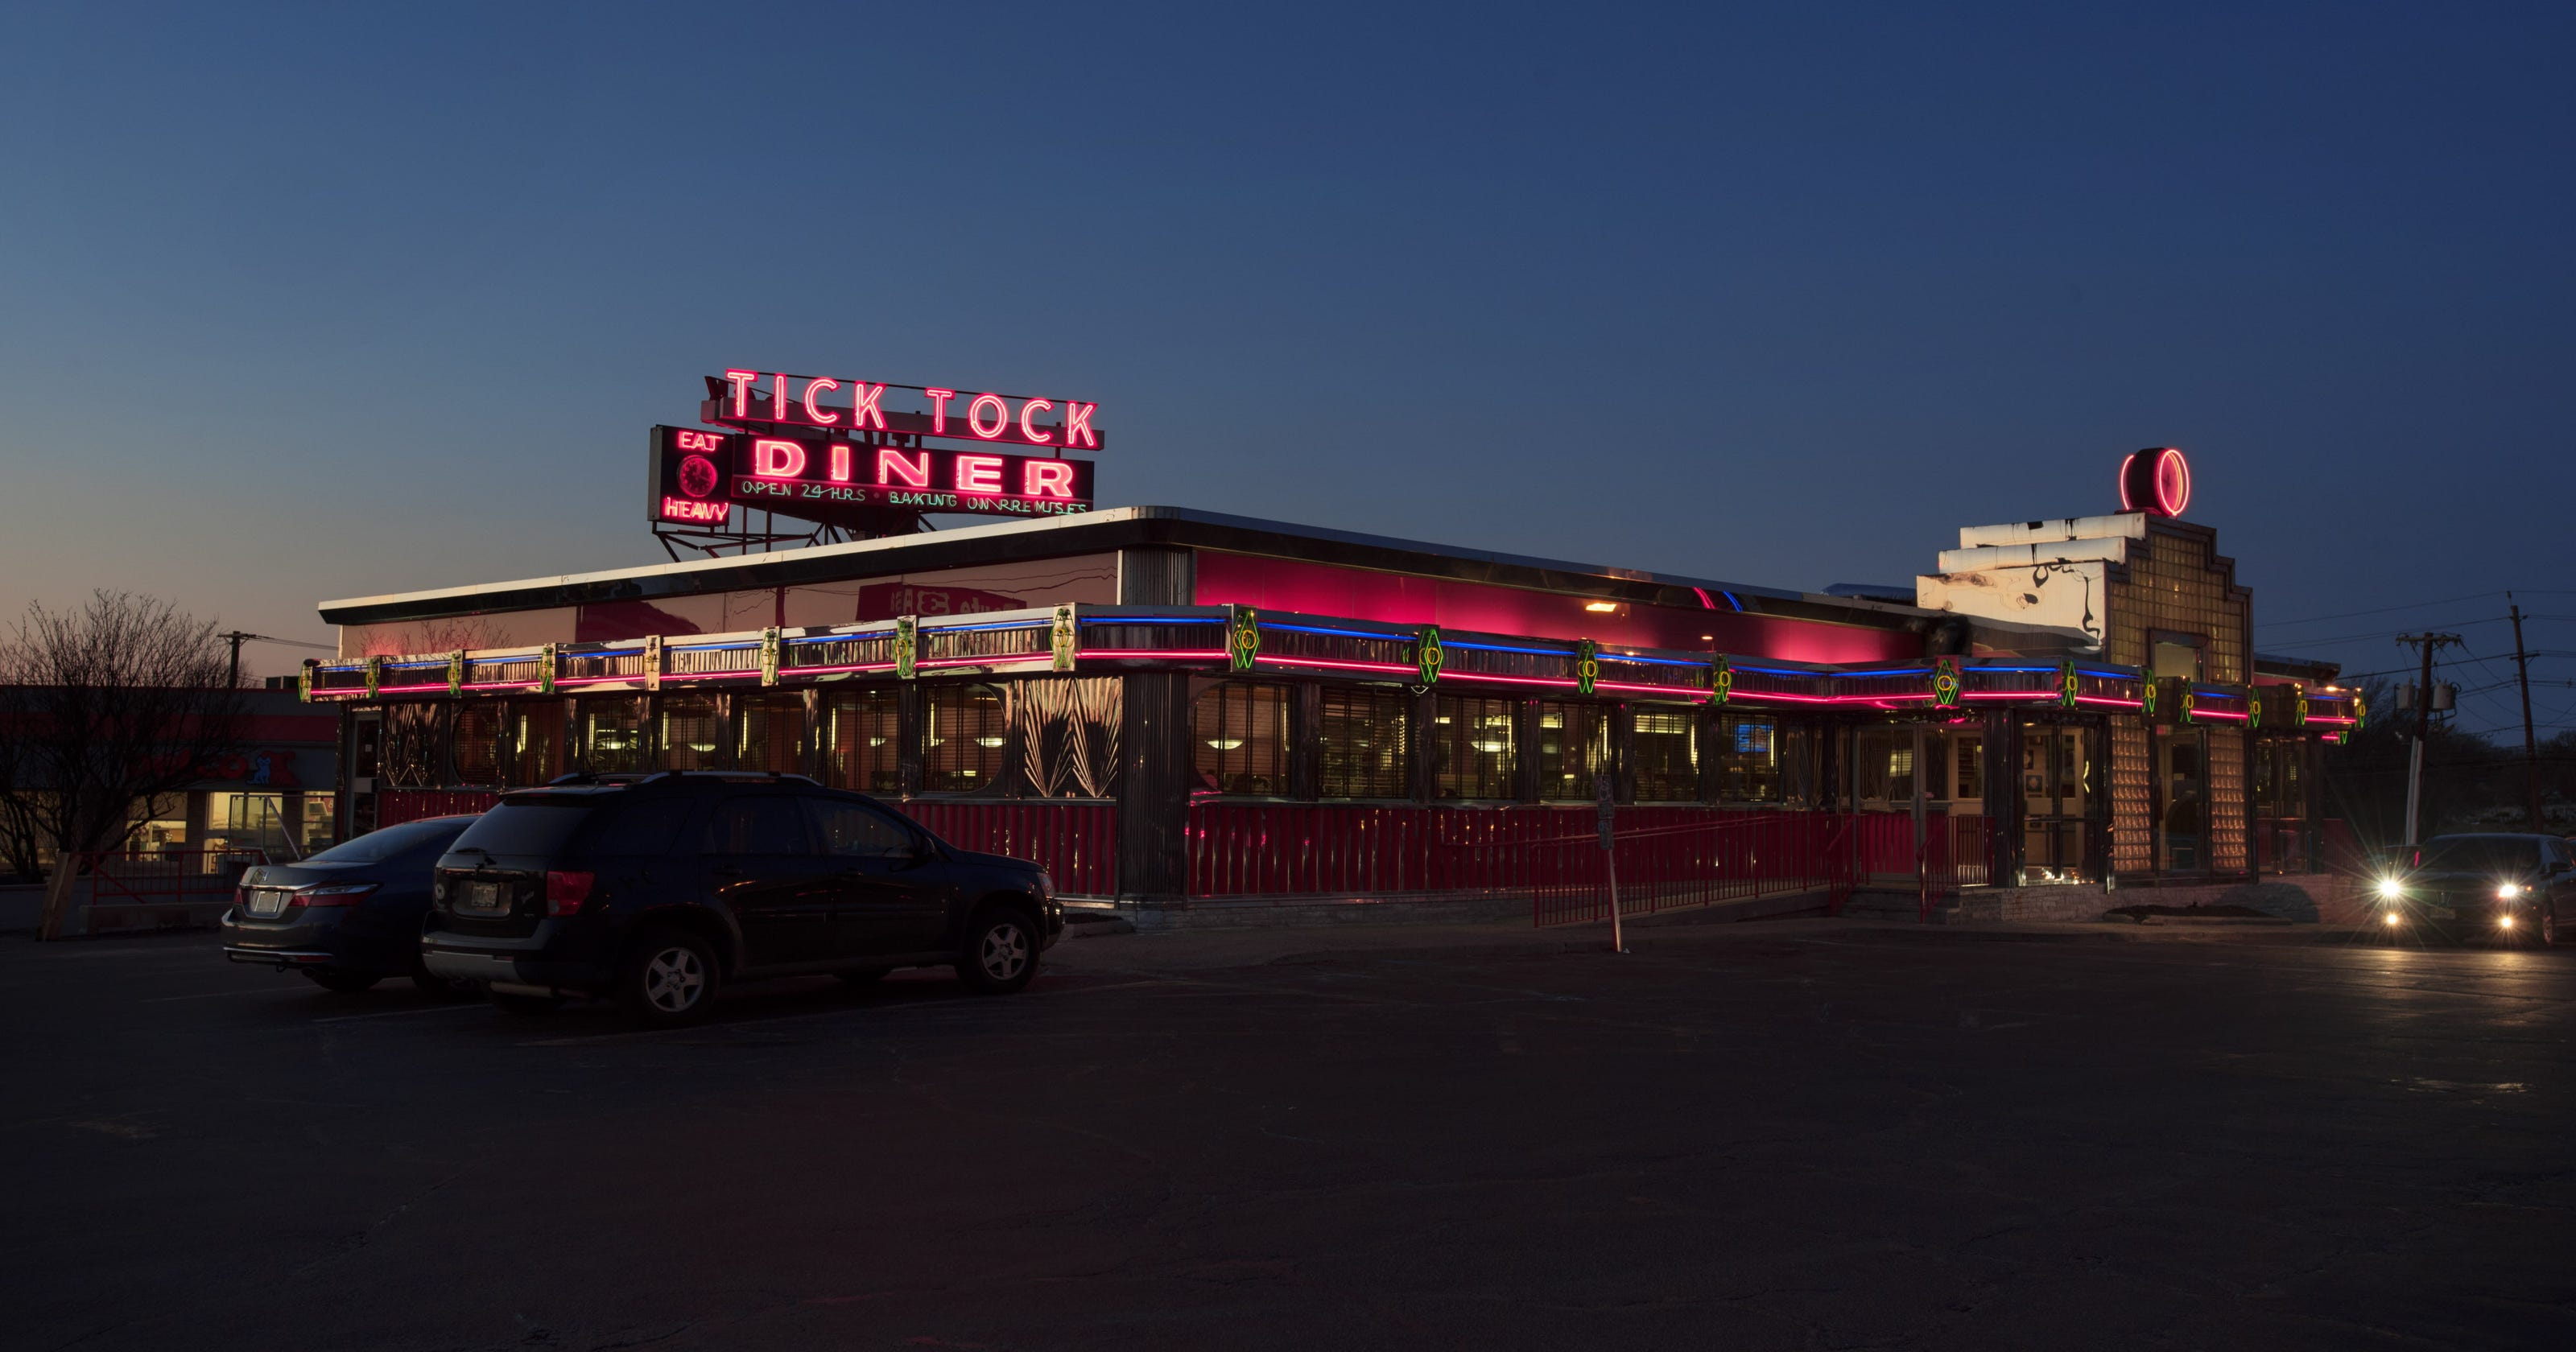 Tick Tock Diner in Clifton NJ to close for four to six weeks